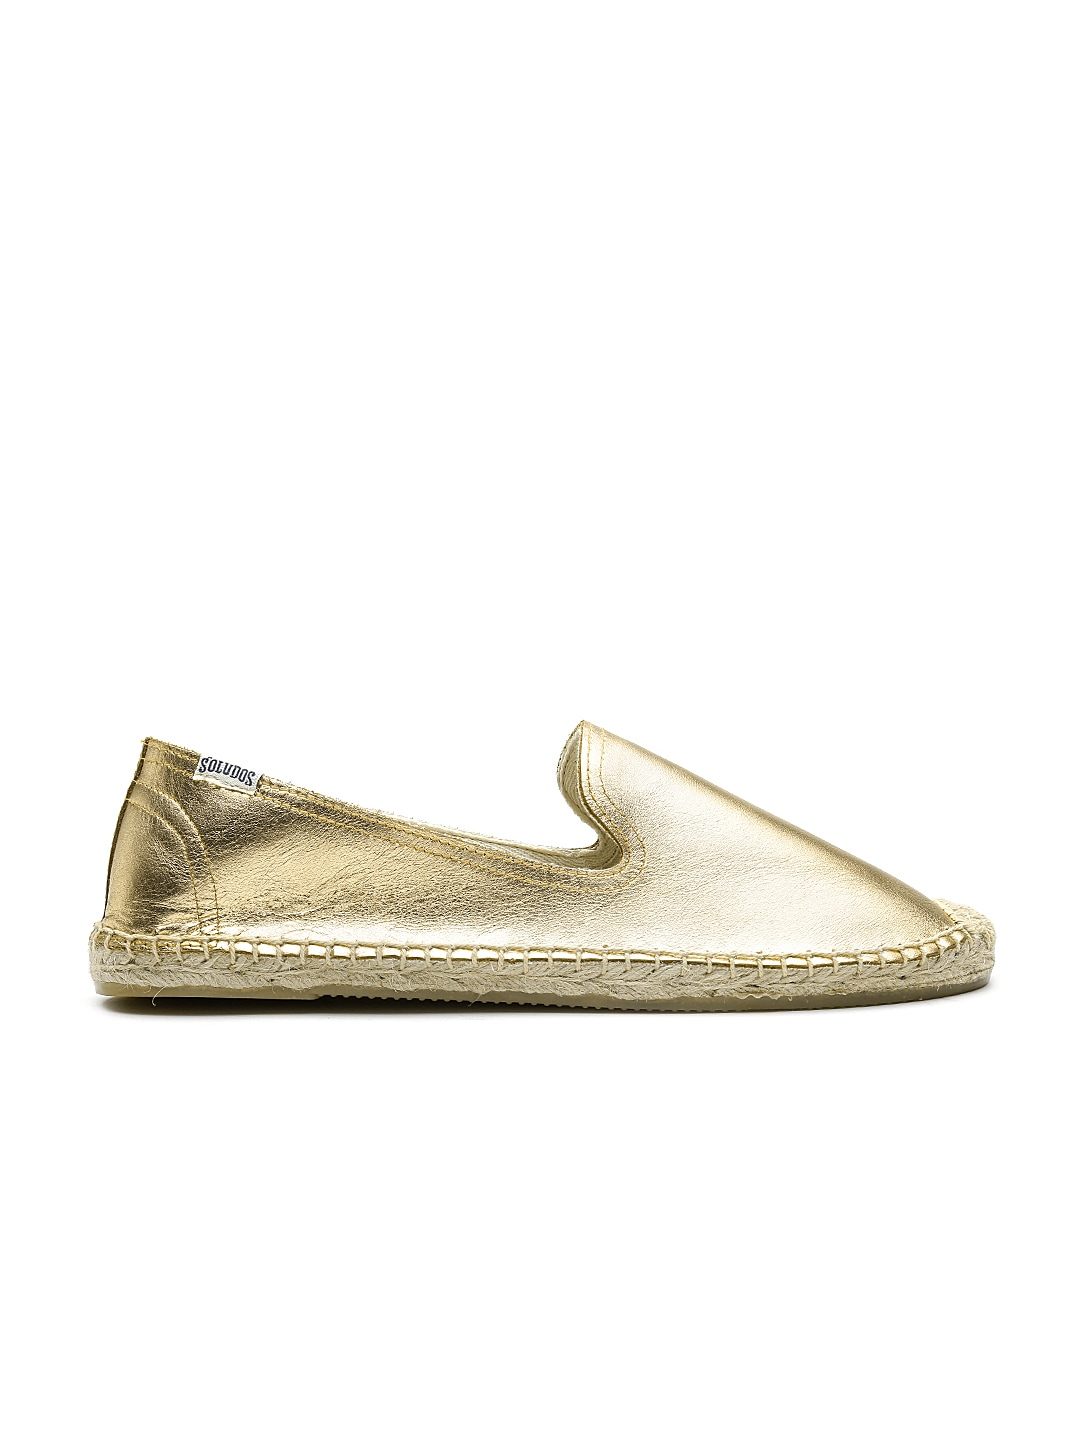 Soludos Women Gold-Toned Leather Espadrilles